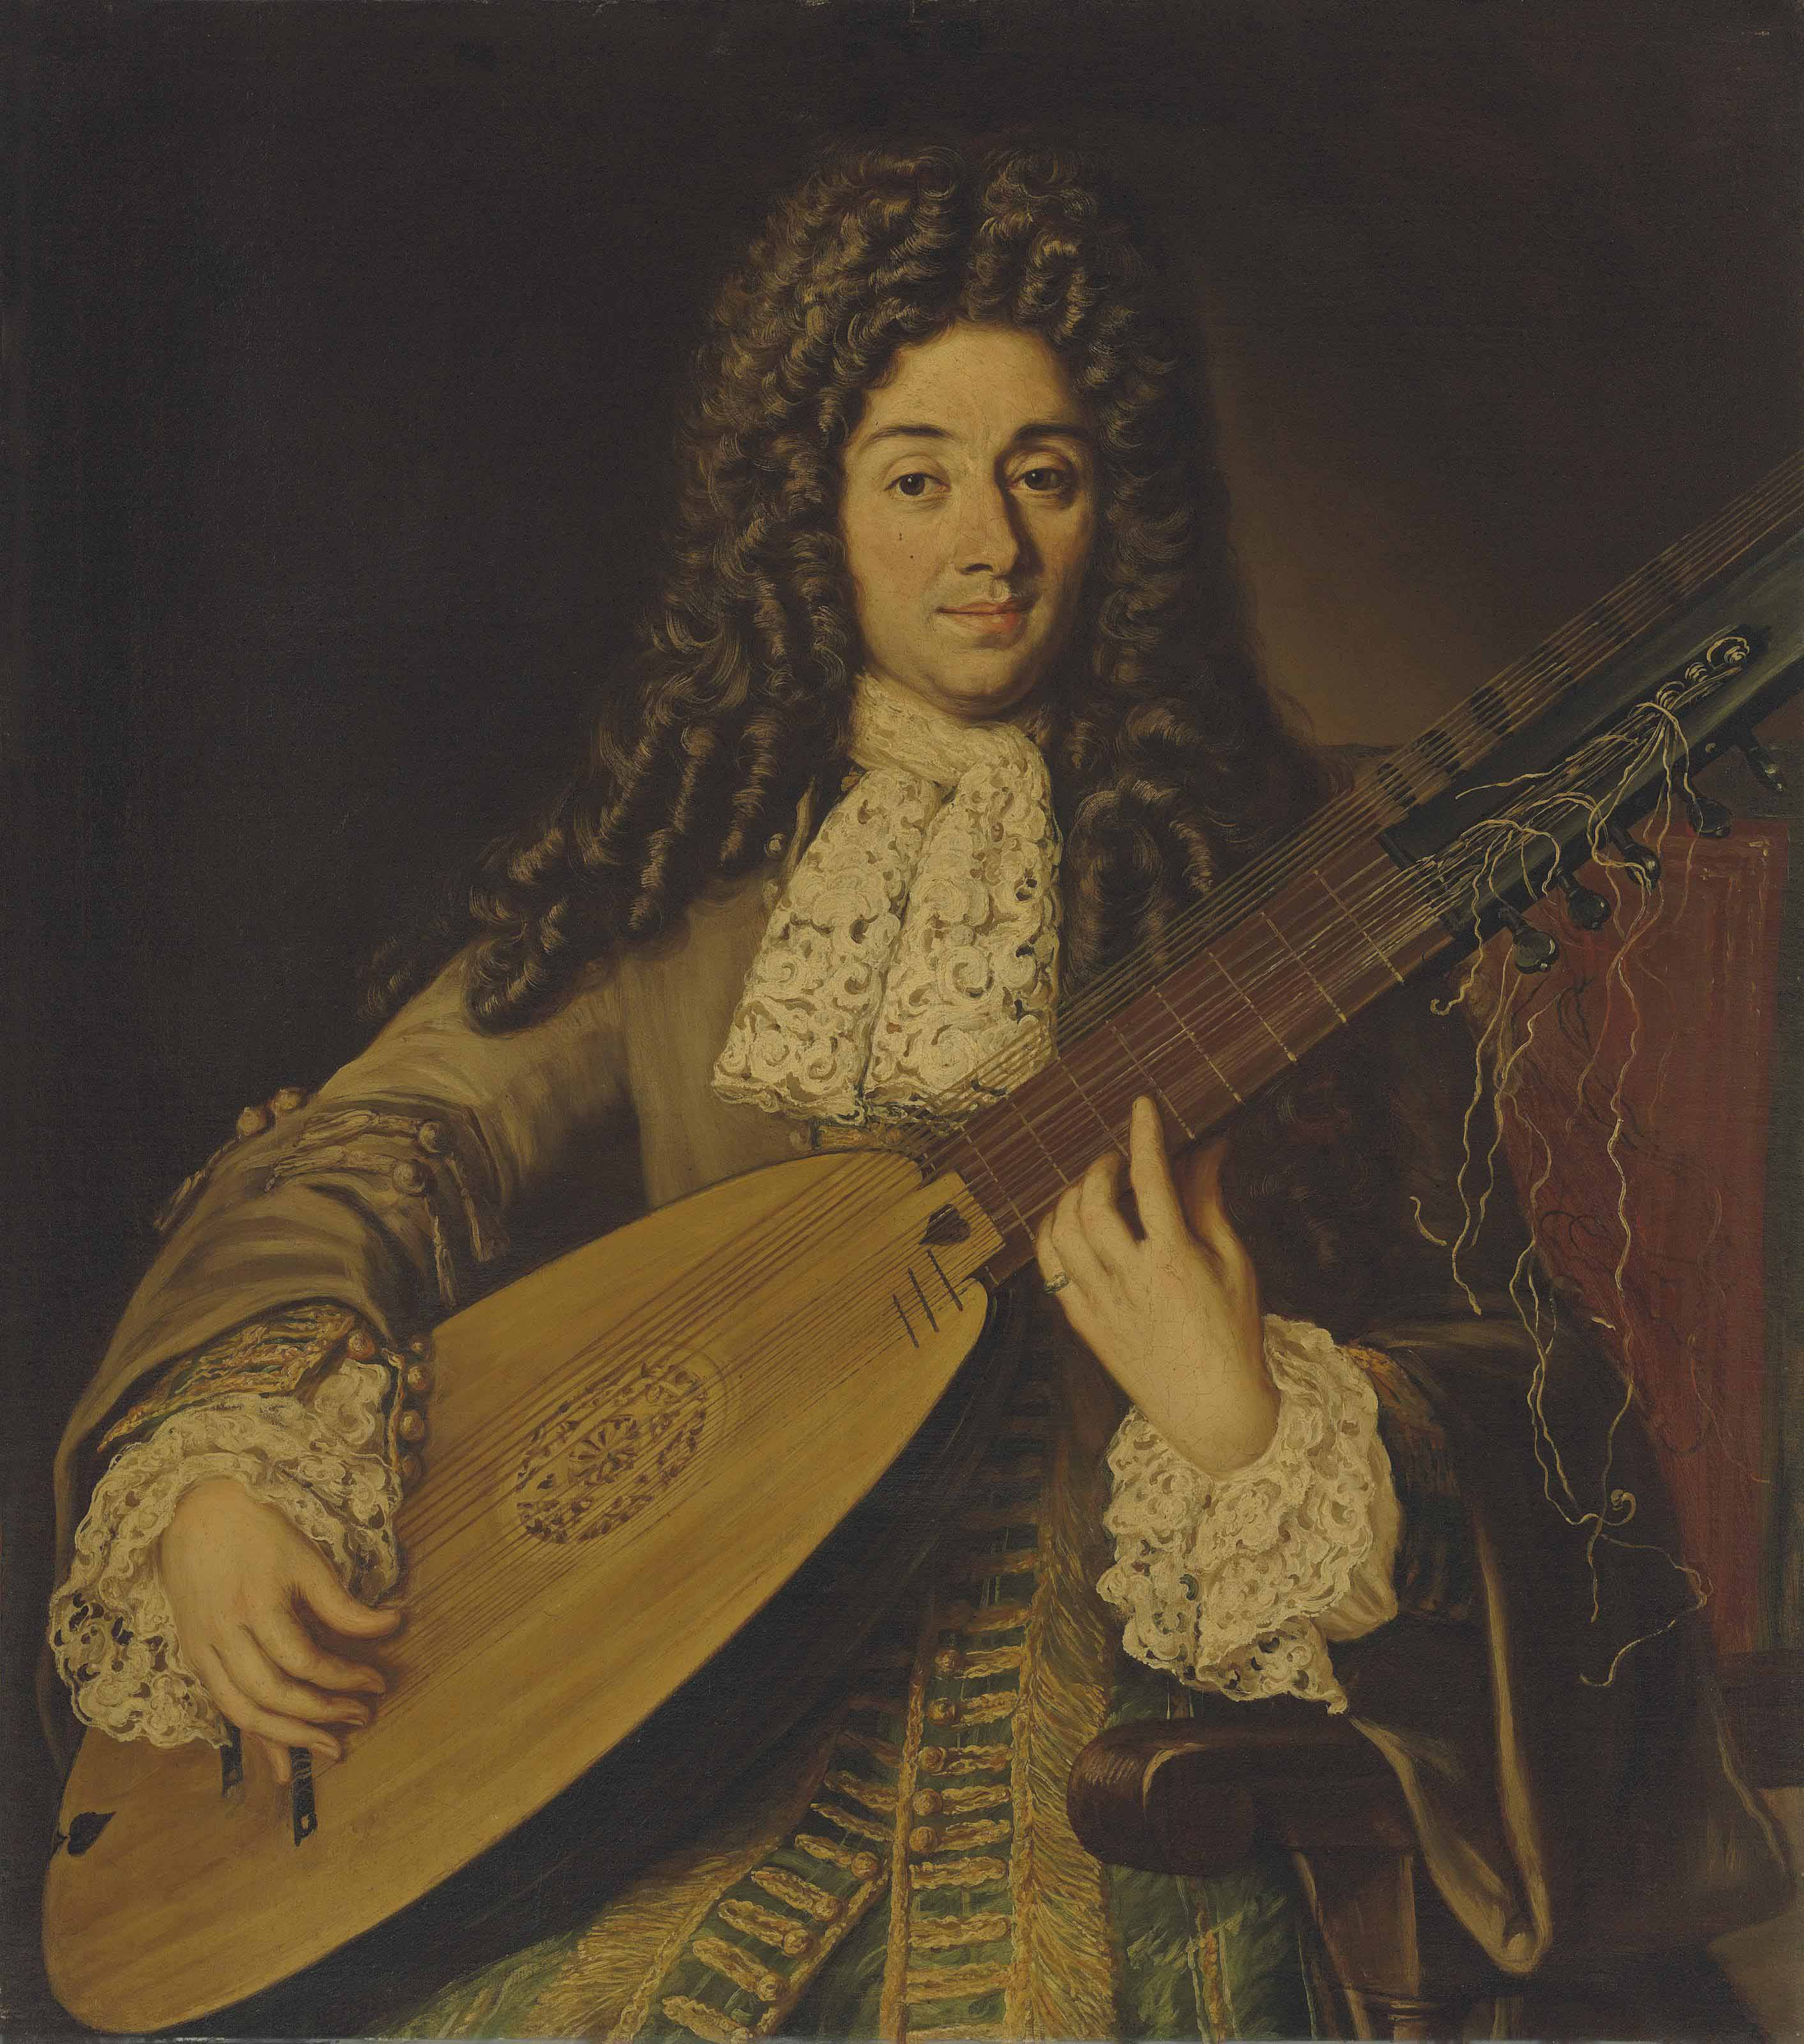 Portrait of a musician, probably Petruccio, half-length, playing a theorbo